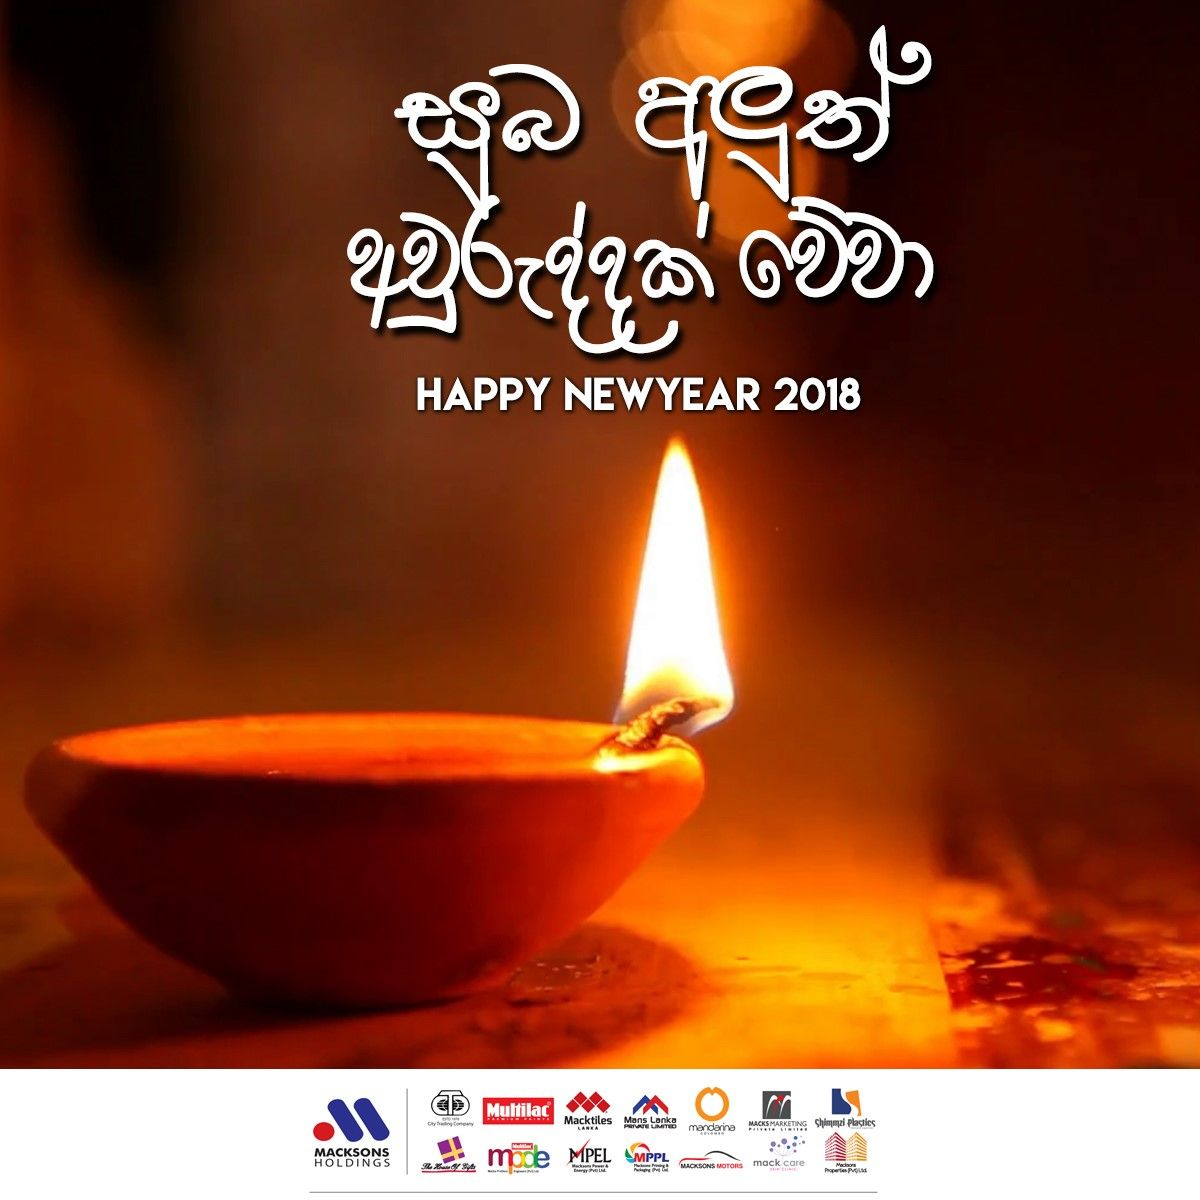 Best Wishes For A Prosperous Sinhala Tamil New Year From The Team At Mackcare Sinhalaandtamilnewyea Sinhala New Year Wishes Sinhala Tamil New Year Newyear